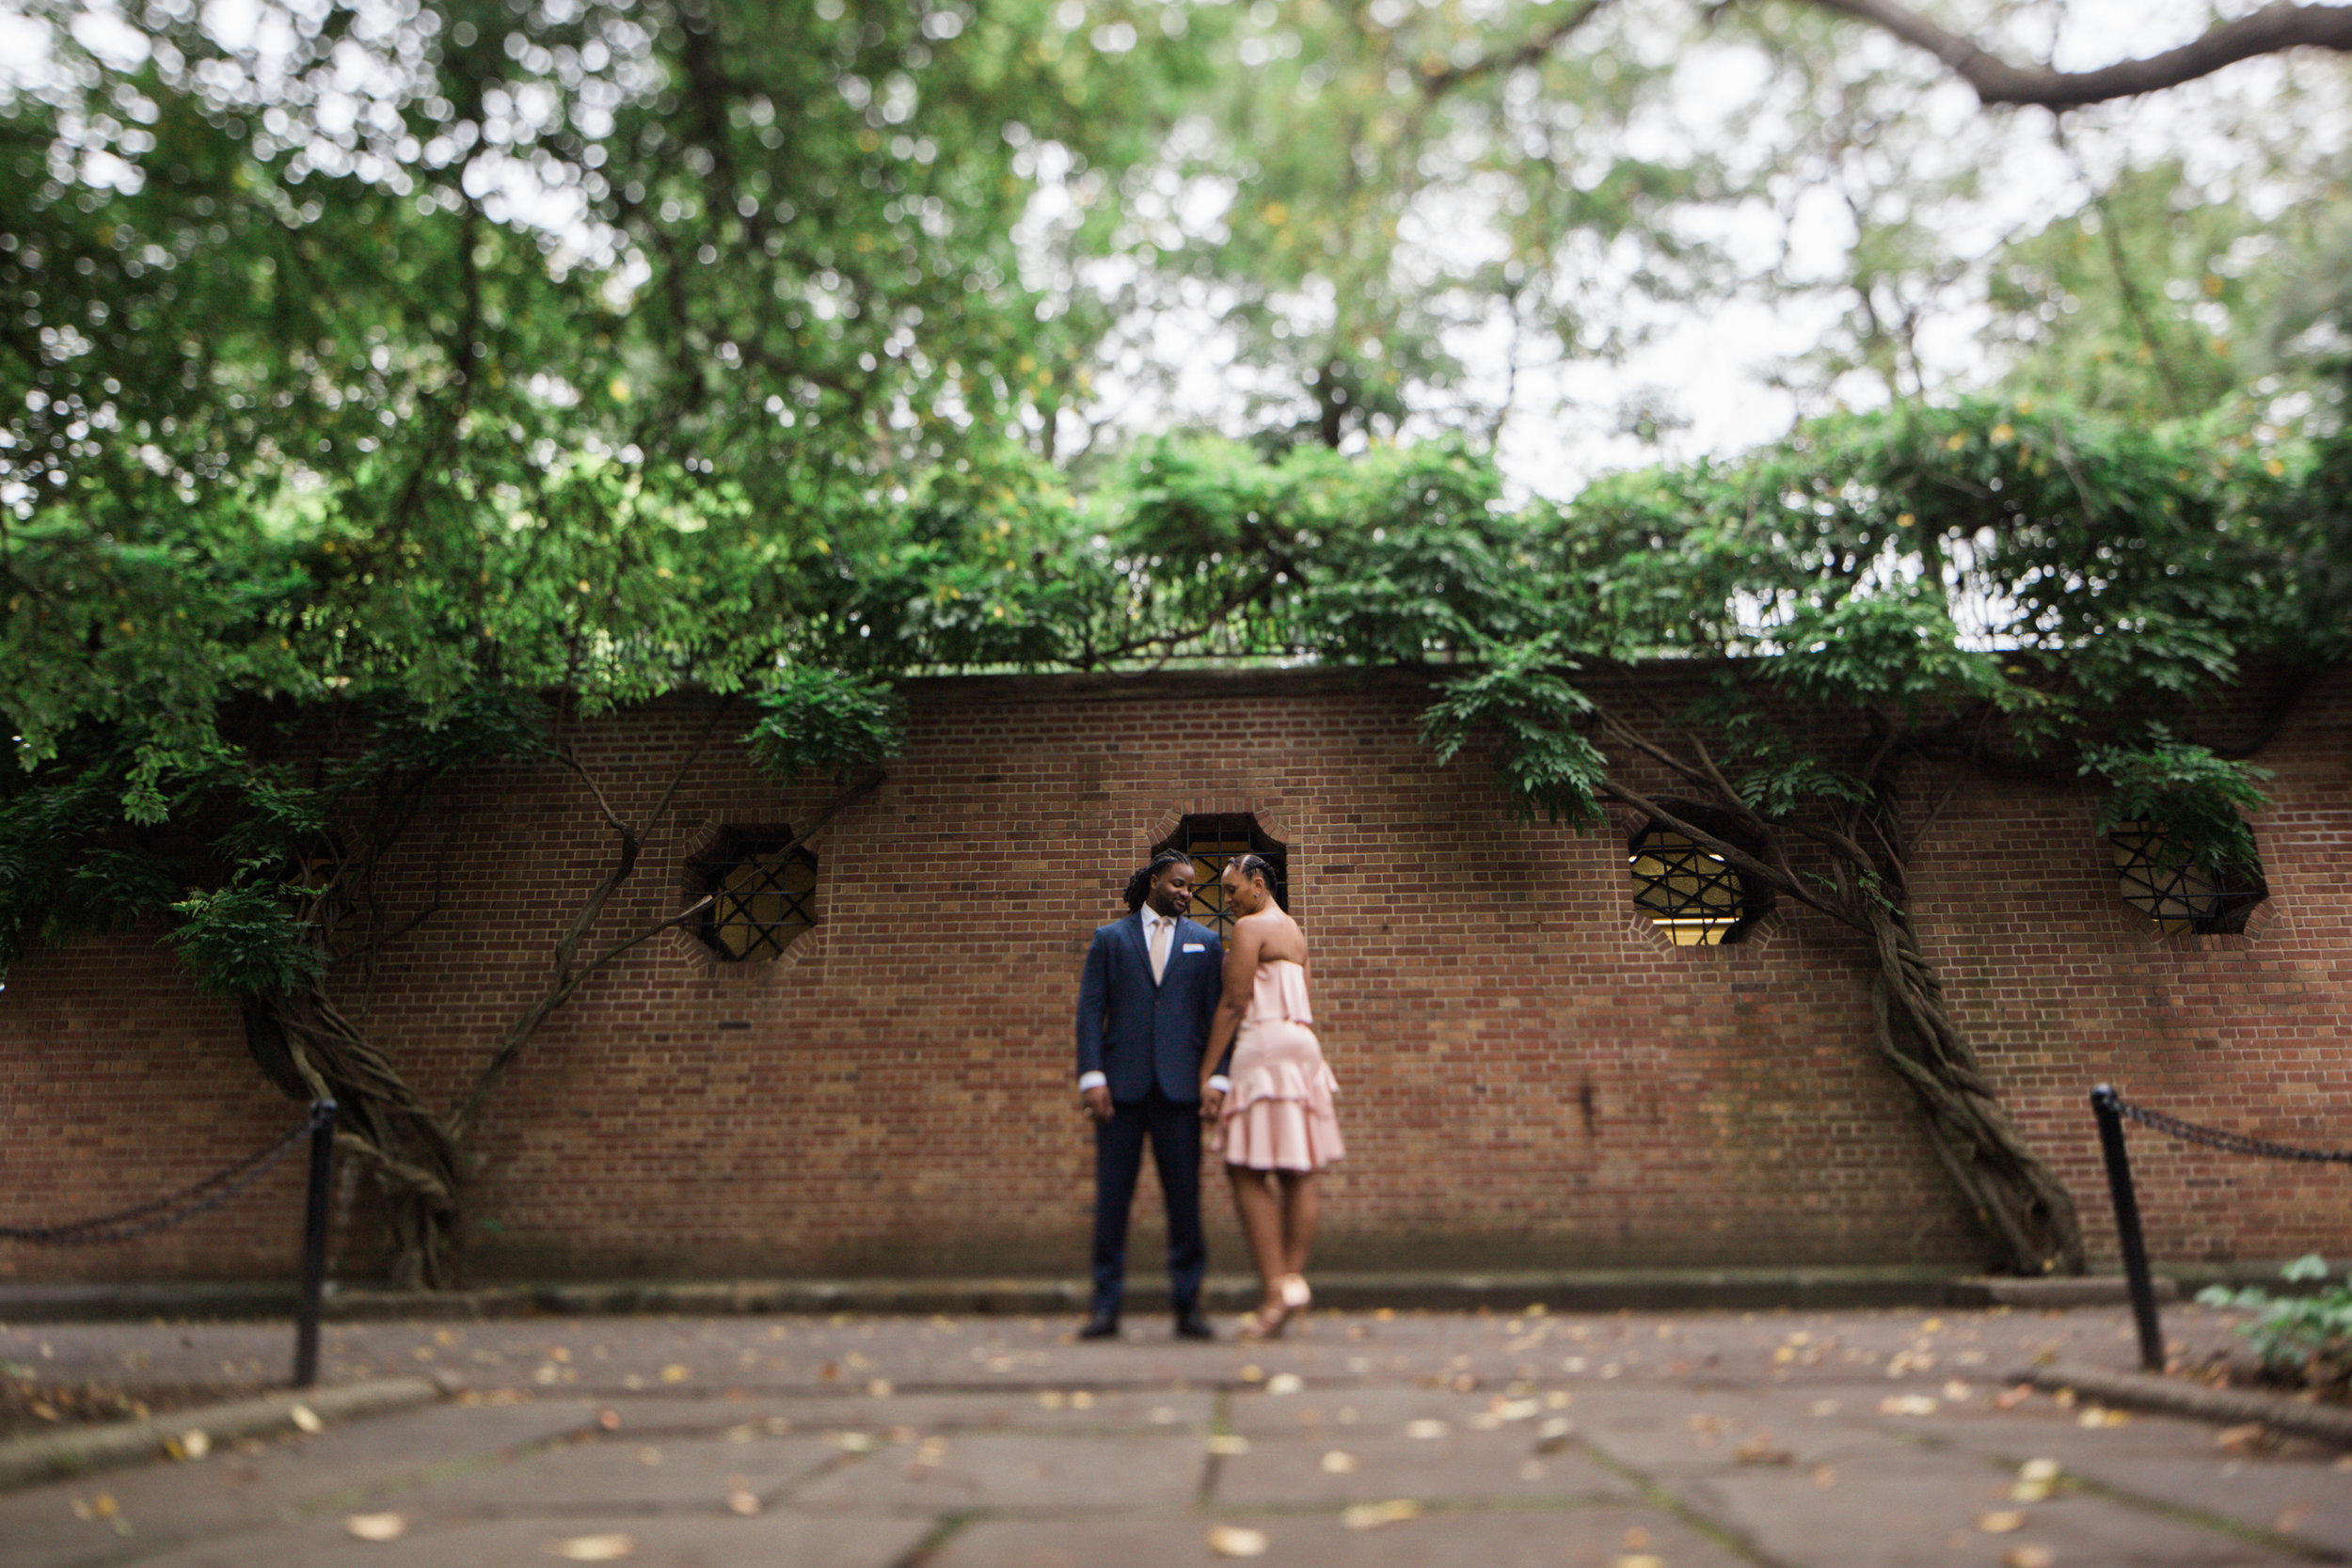 Megapixels Media Best Destination Engagement Photography in Famous New York City Central Park Location.jpg